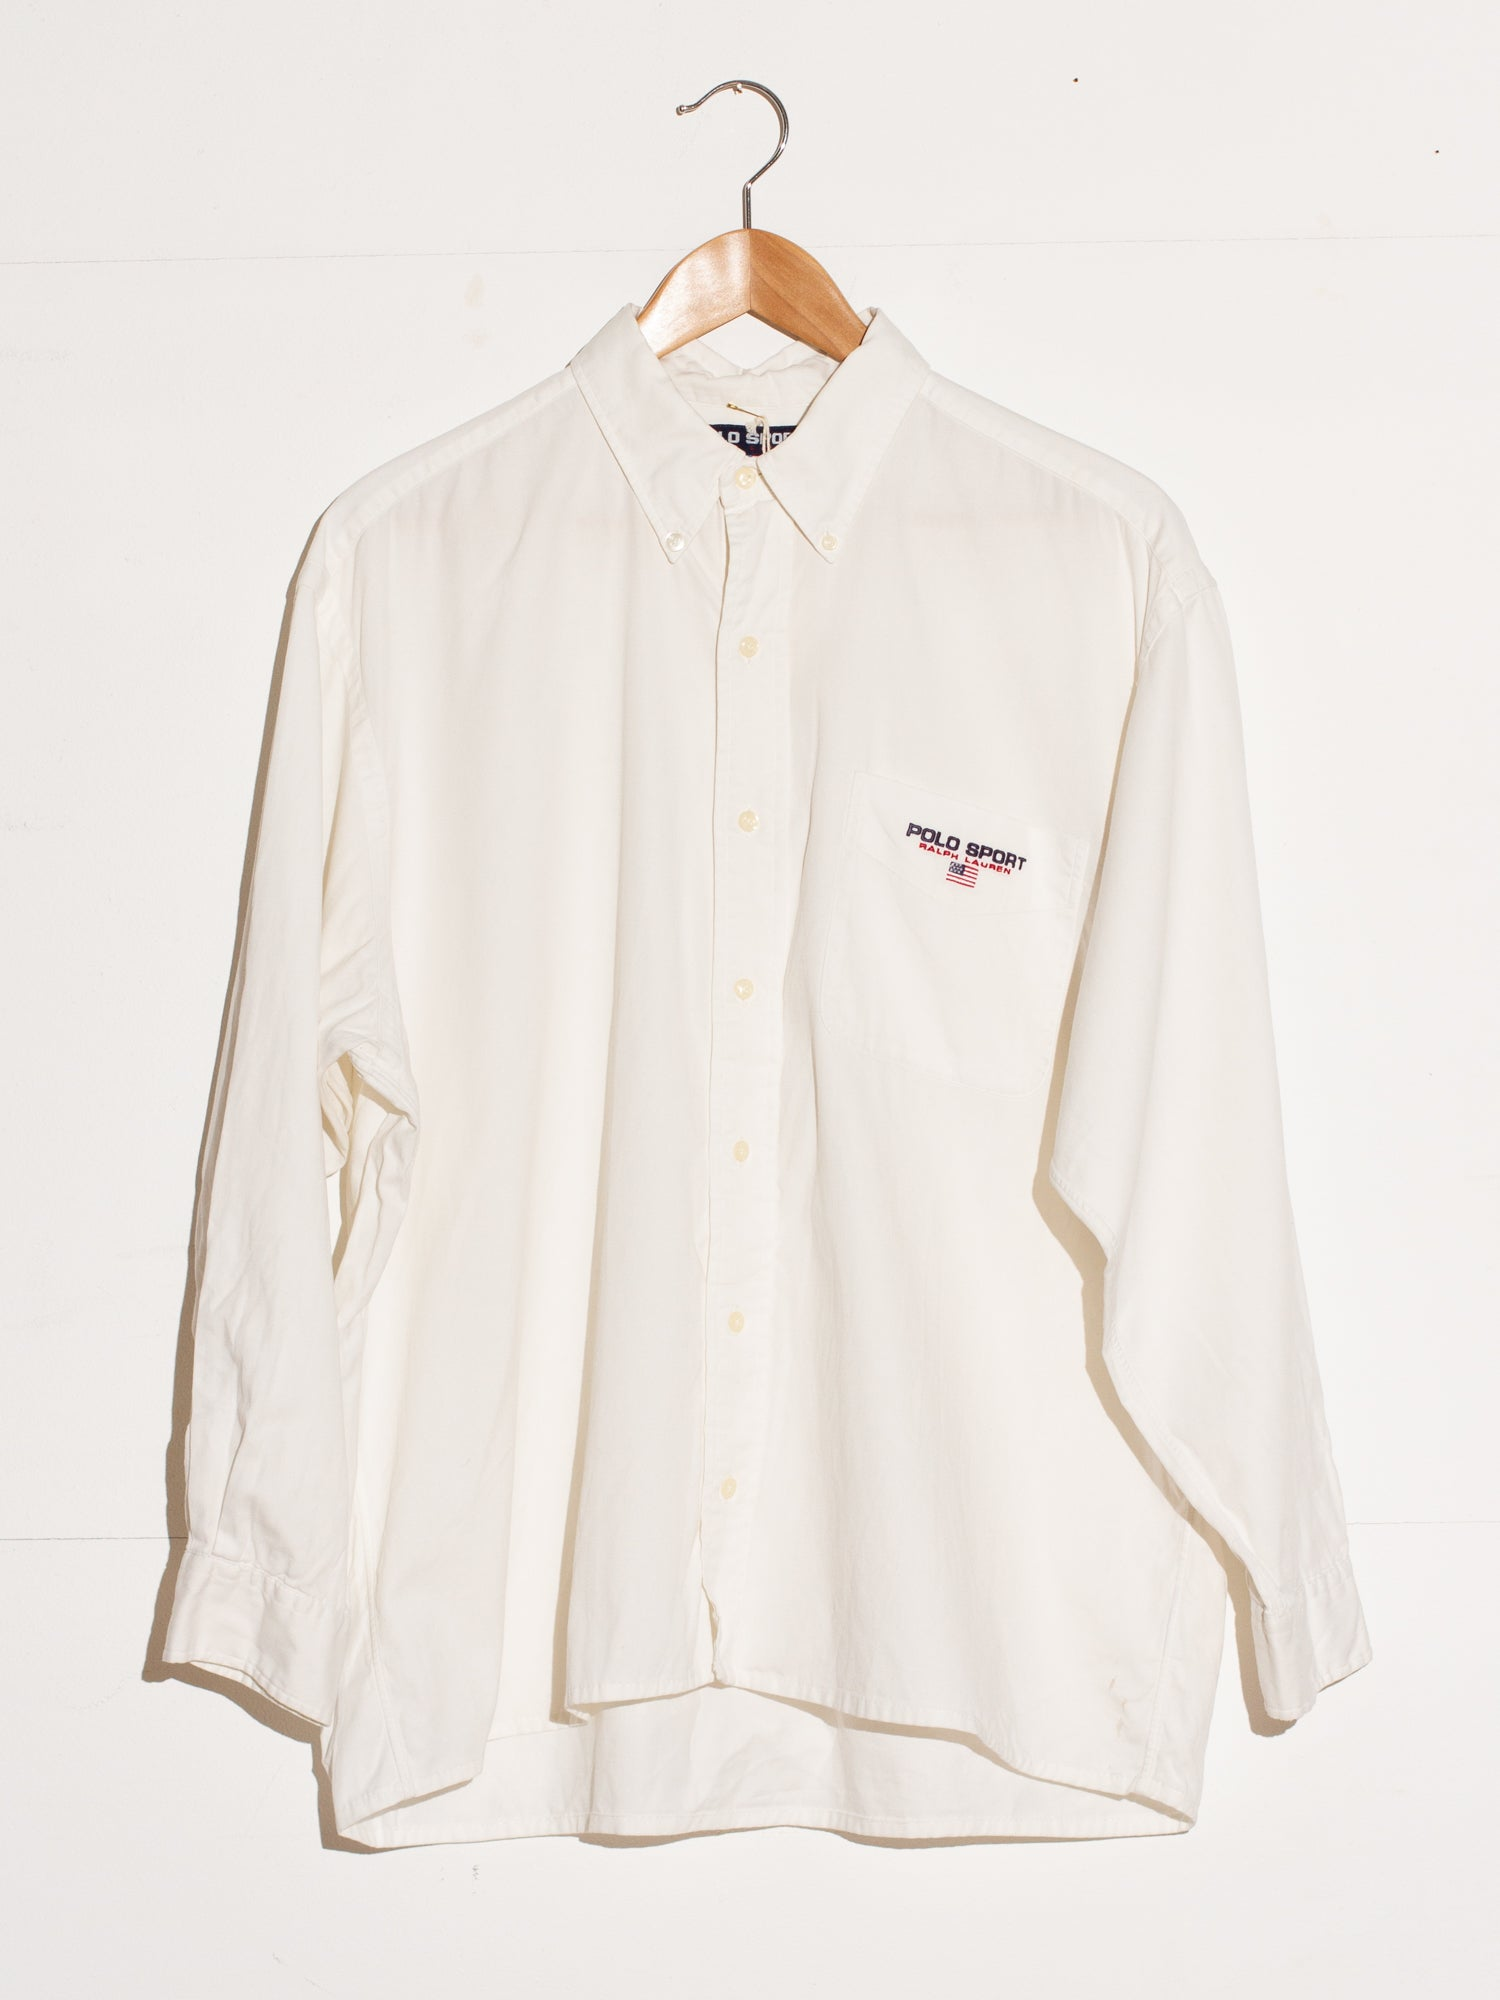 POLO SPORT BY RALPH LAUREN CLASSIC WHITE BUTTON UP